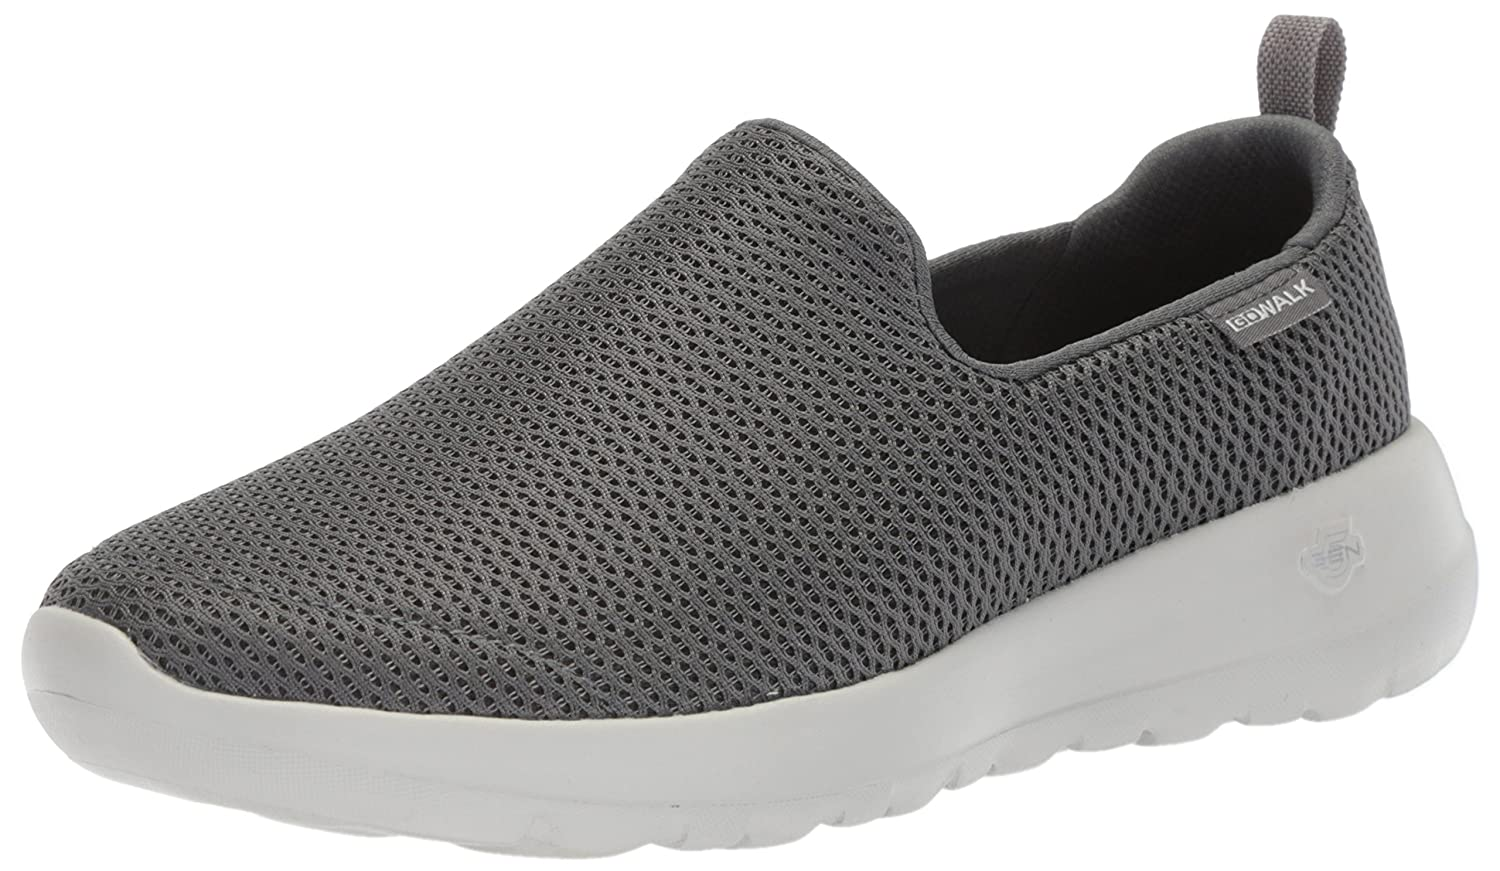 Skechers Damen Go Walk Joy-Gratify Slip on Sneaker, Schwarz (Black), 38.5 EU